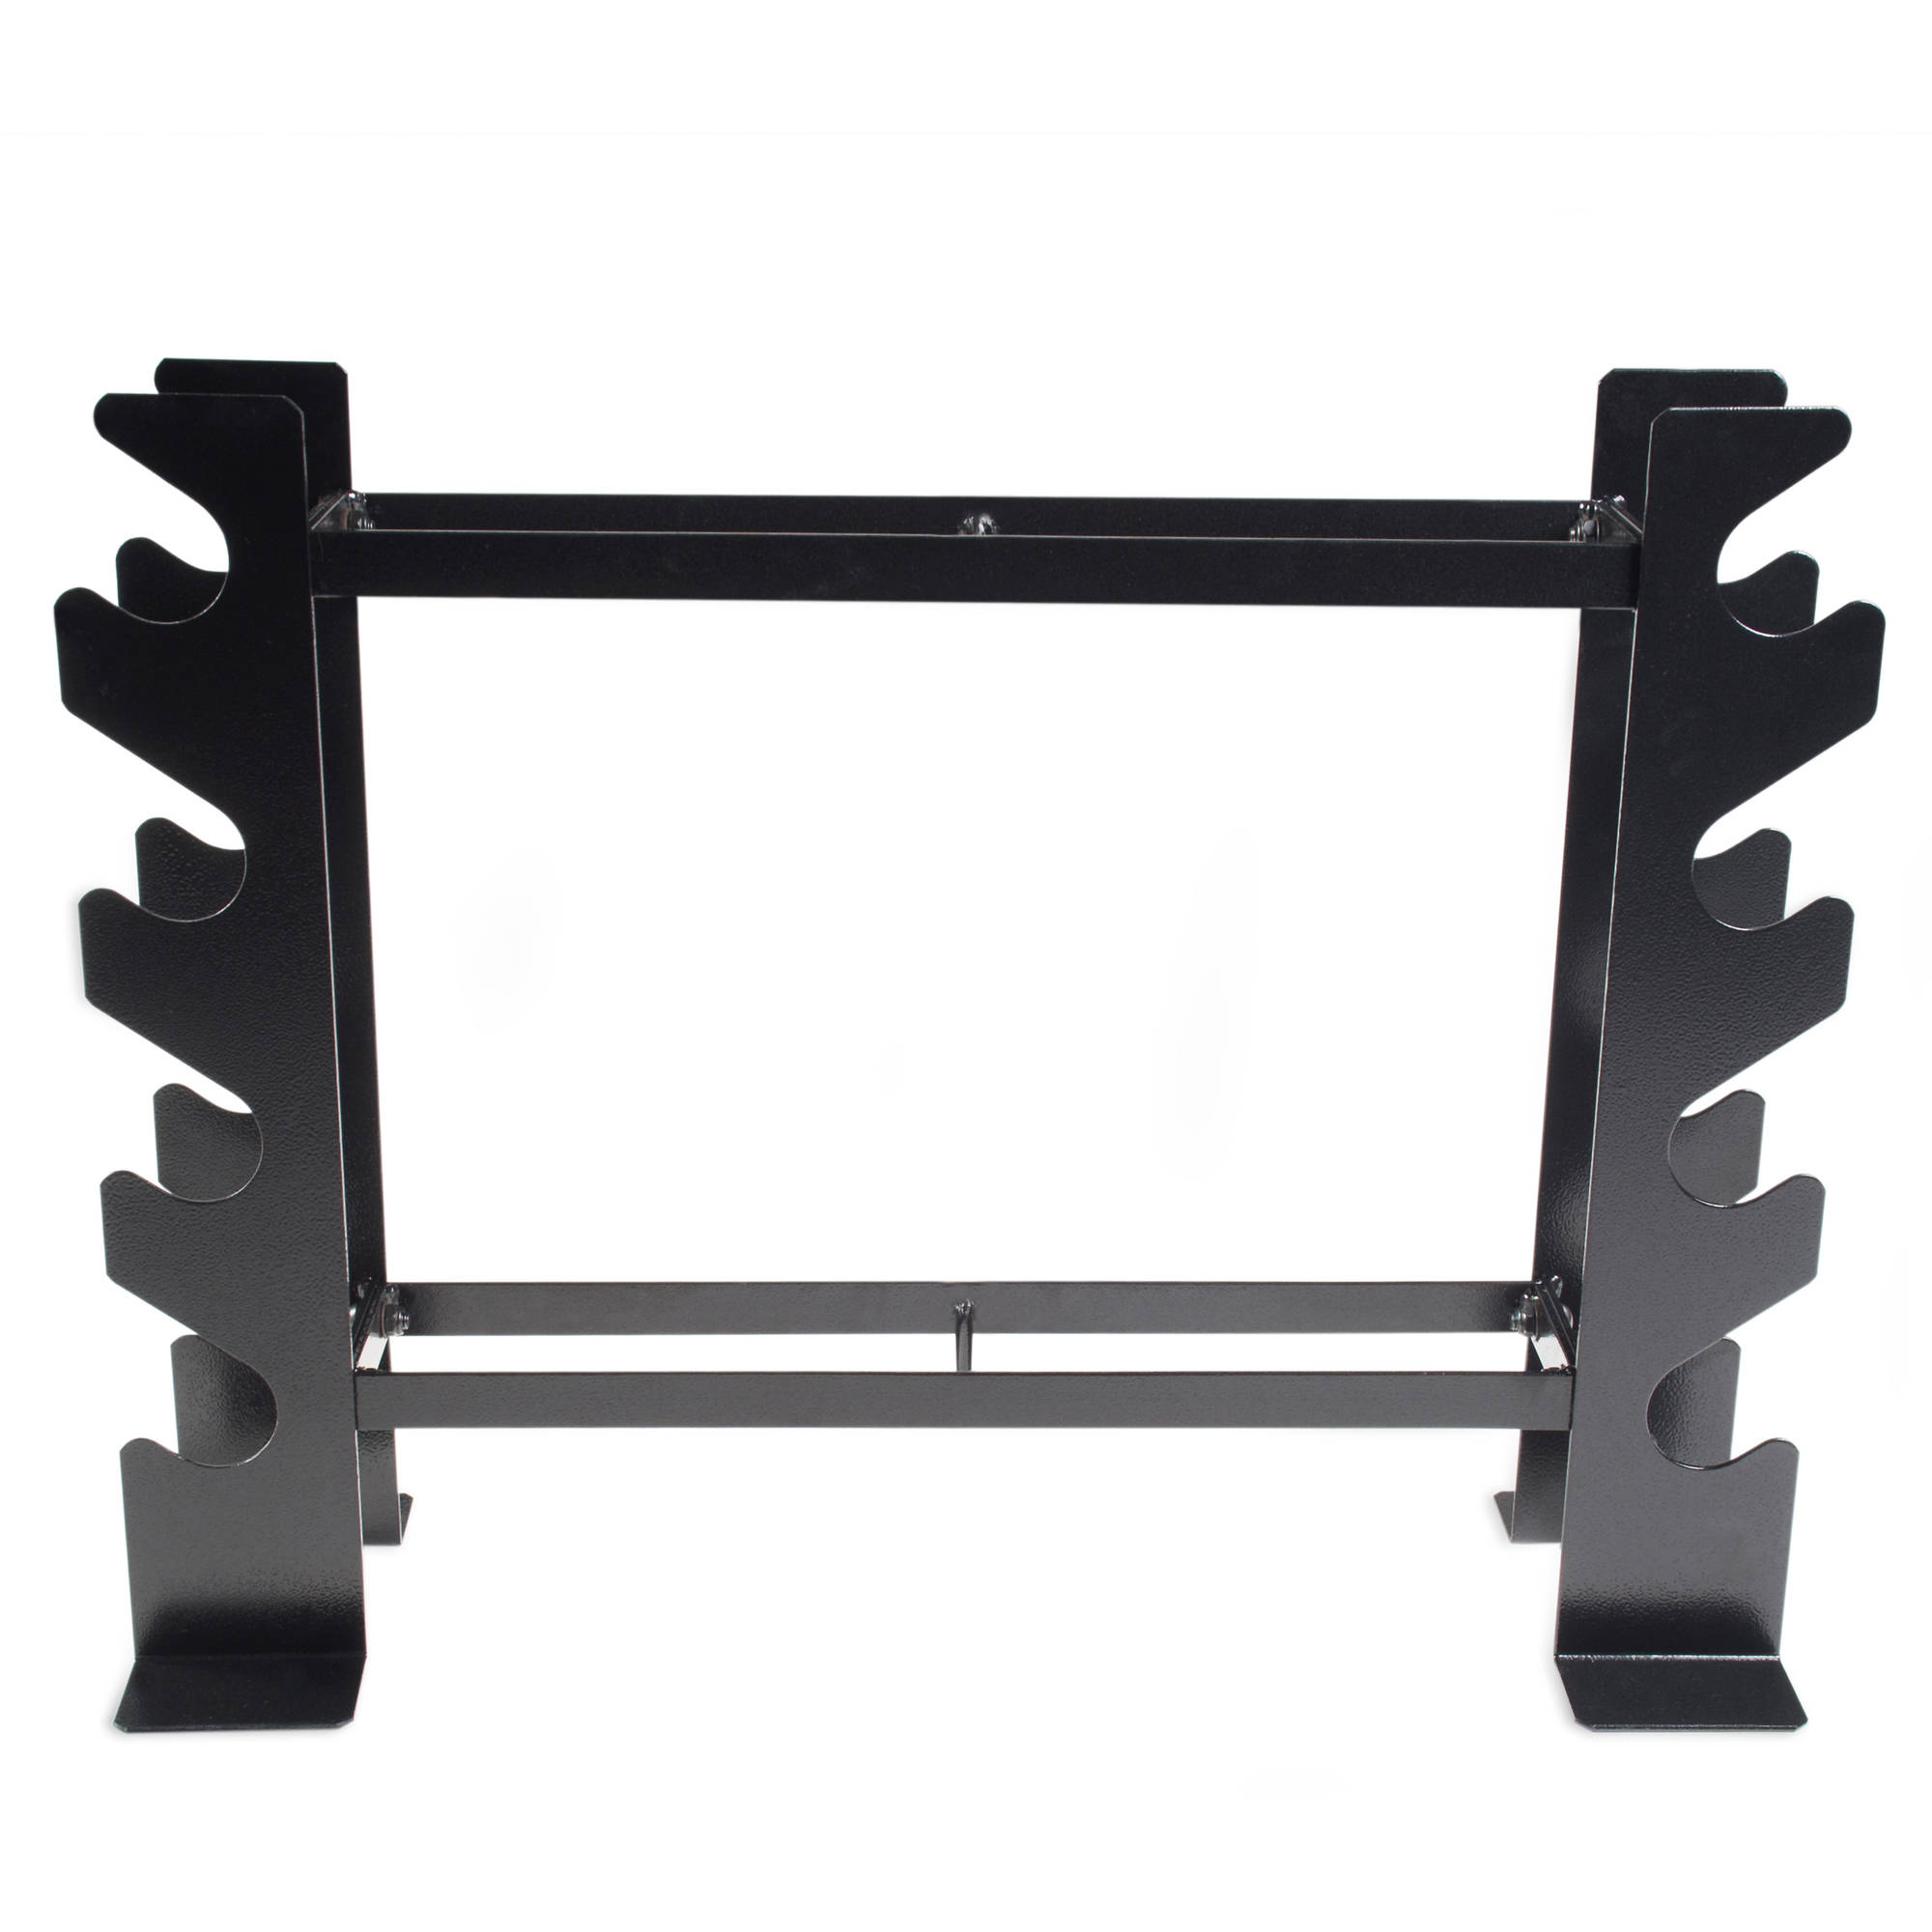 CAP Dumbbell and Fitness Accessory Storage Rack